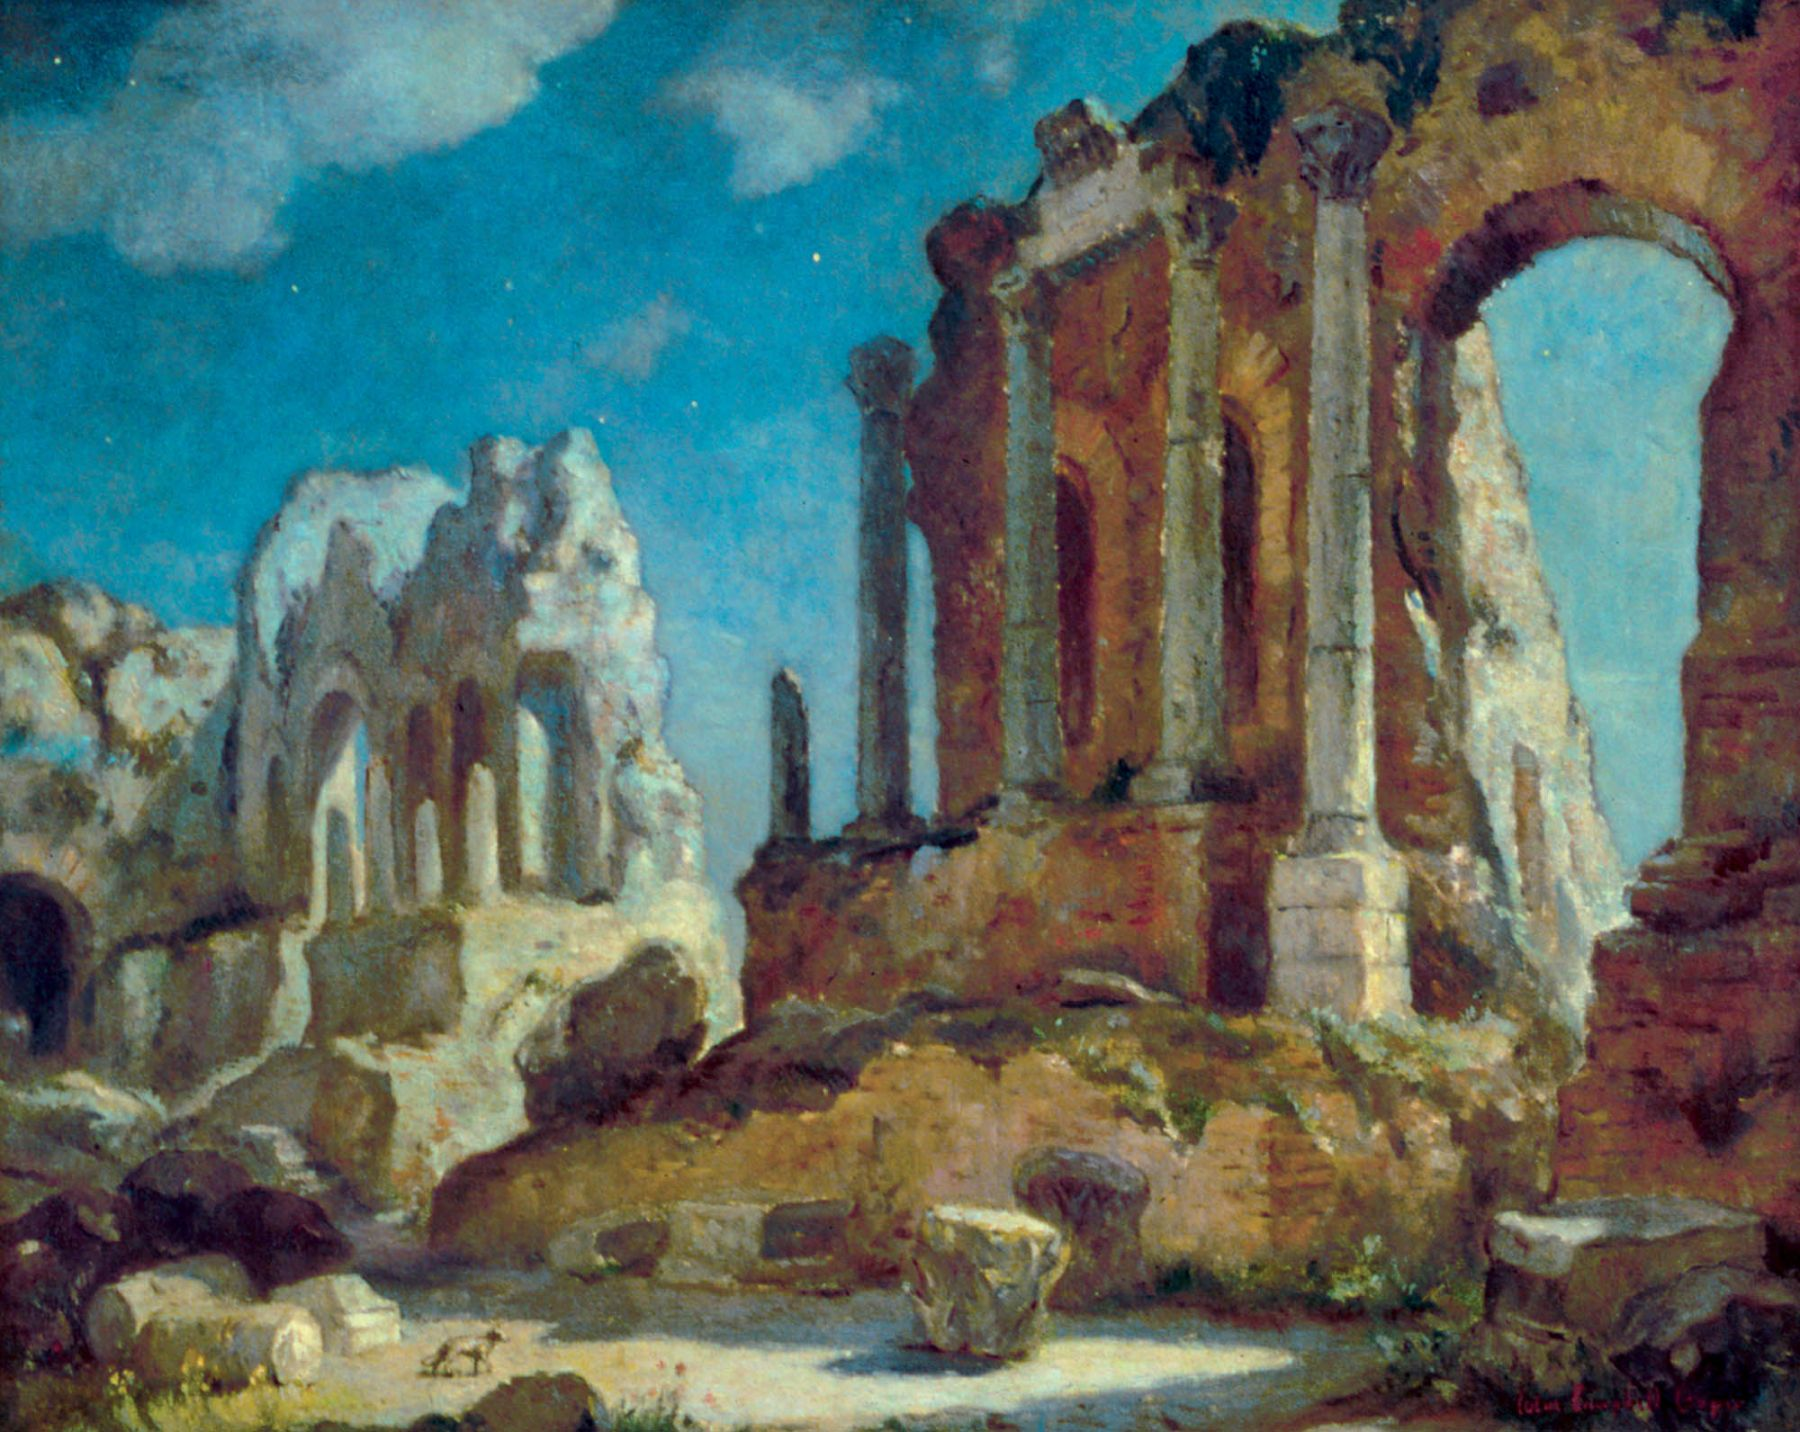 Colin Campbell Cooper, Greco-Roman Theatre at Night, Taoromina, Sicily, Circa 1910